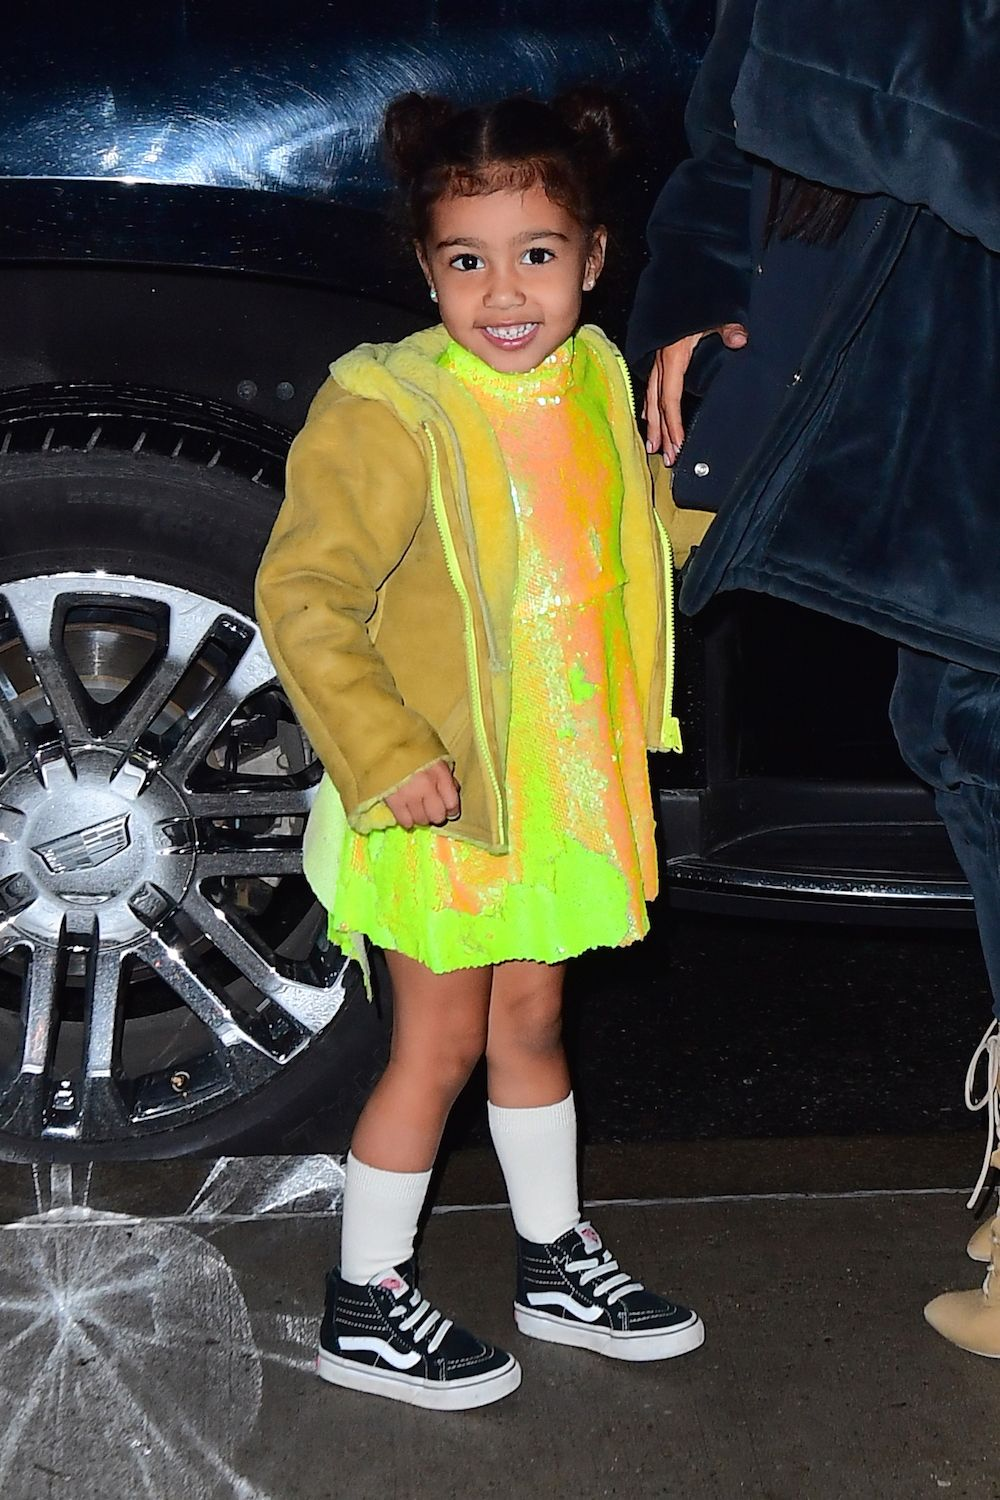 Wests north best looks in